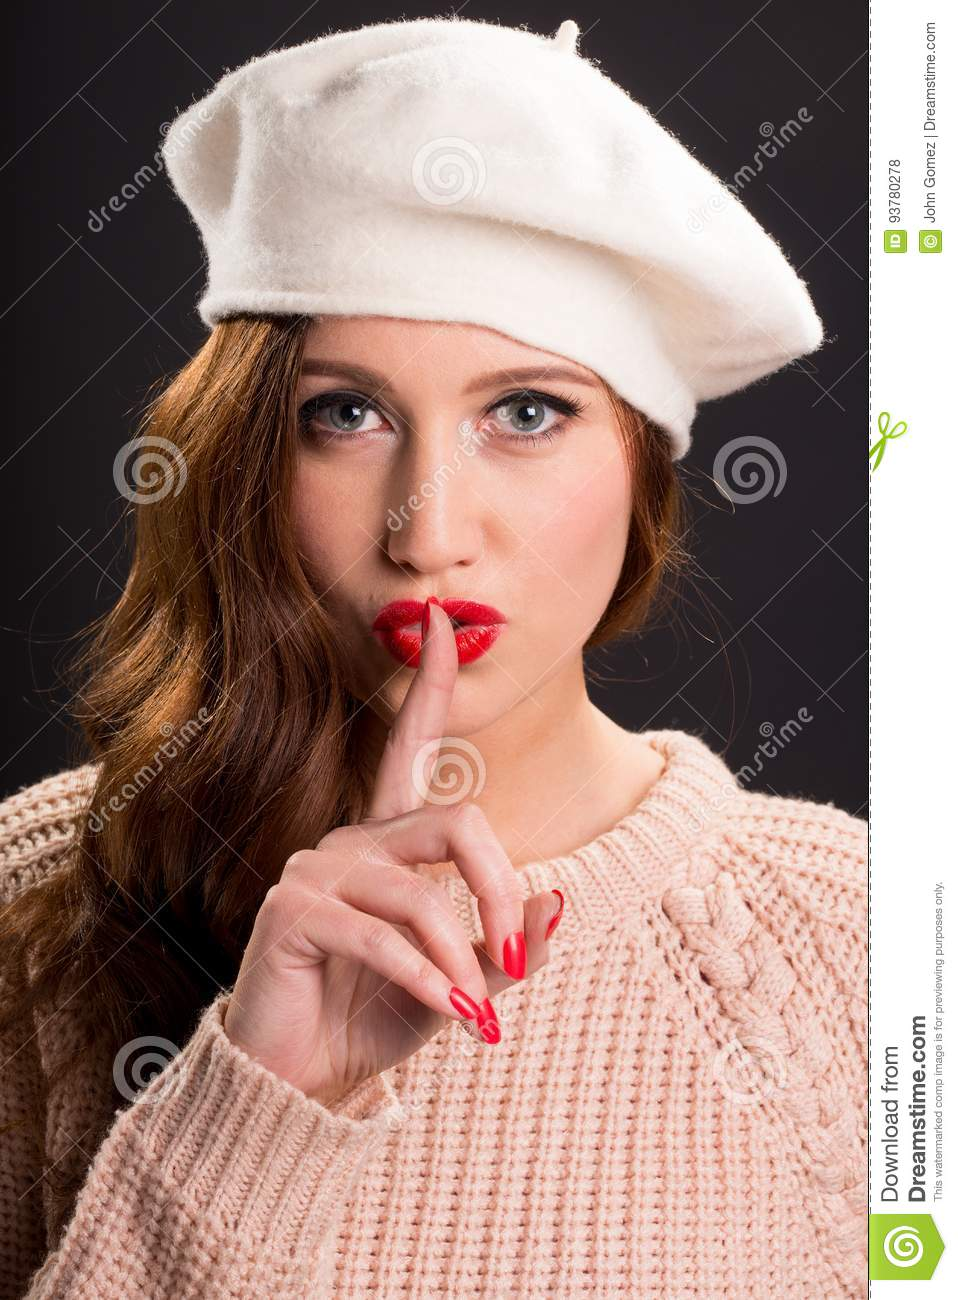 3c8f2b8db42 Vintage Style Portrait Of Beautiful Young Woman Wearing A Beret Hat ...